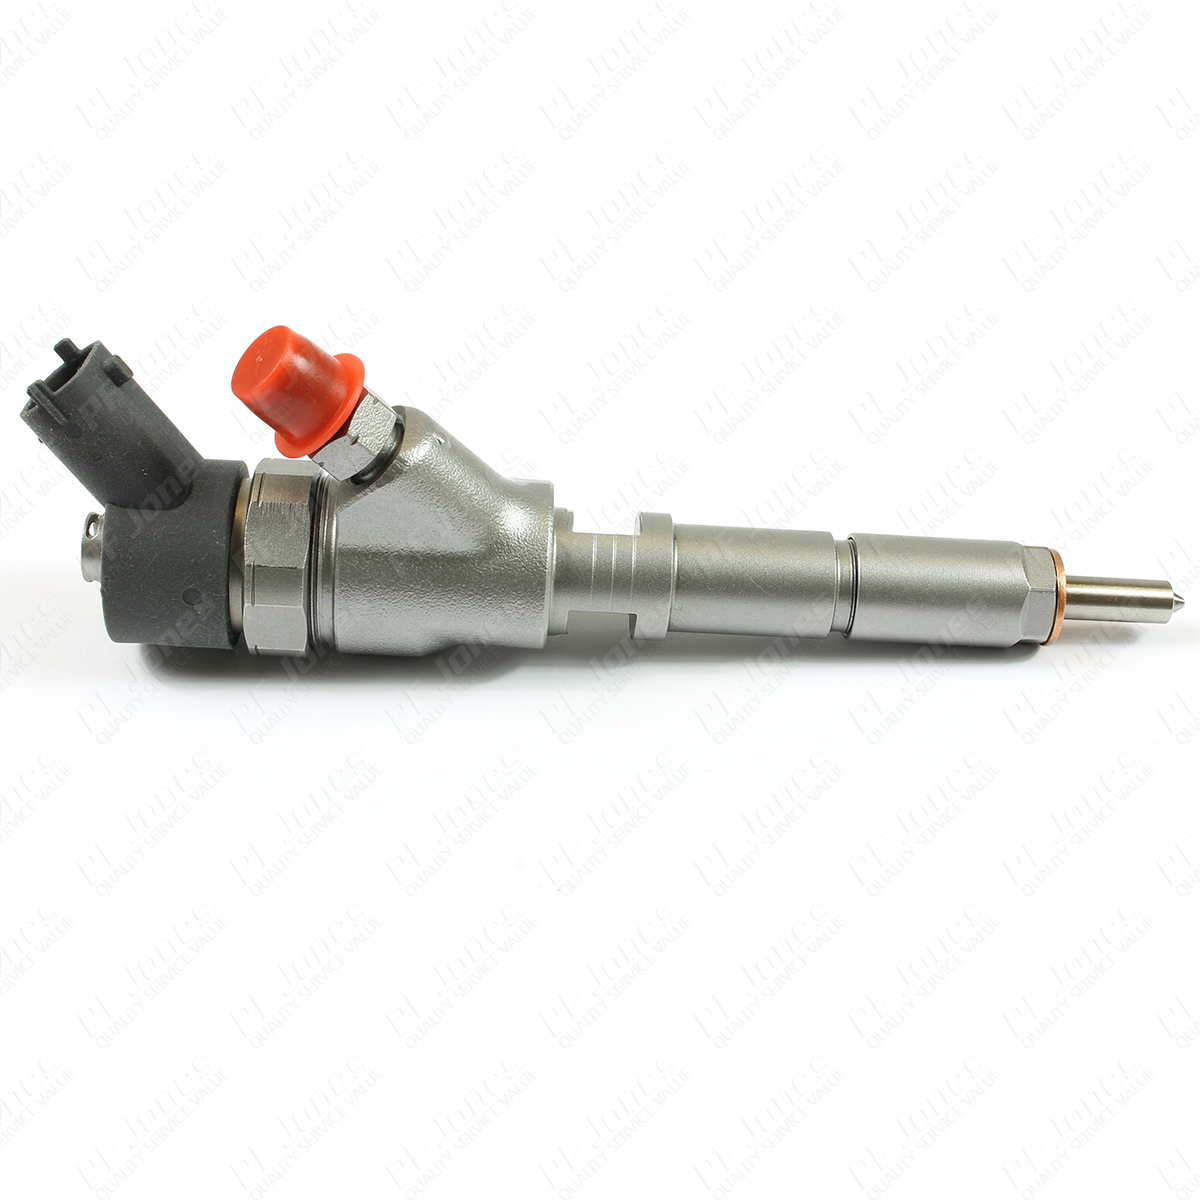 Peugeot 206 20 Hdi 1999 2005 New Bosch Diesel Injector 0445110076 Wiring